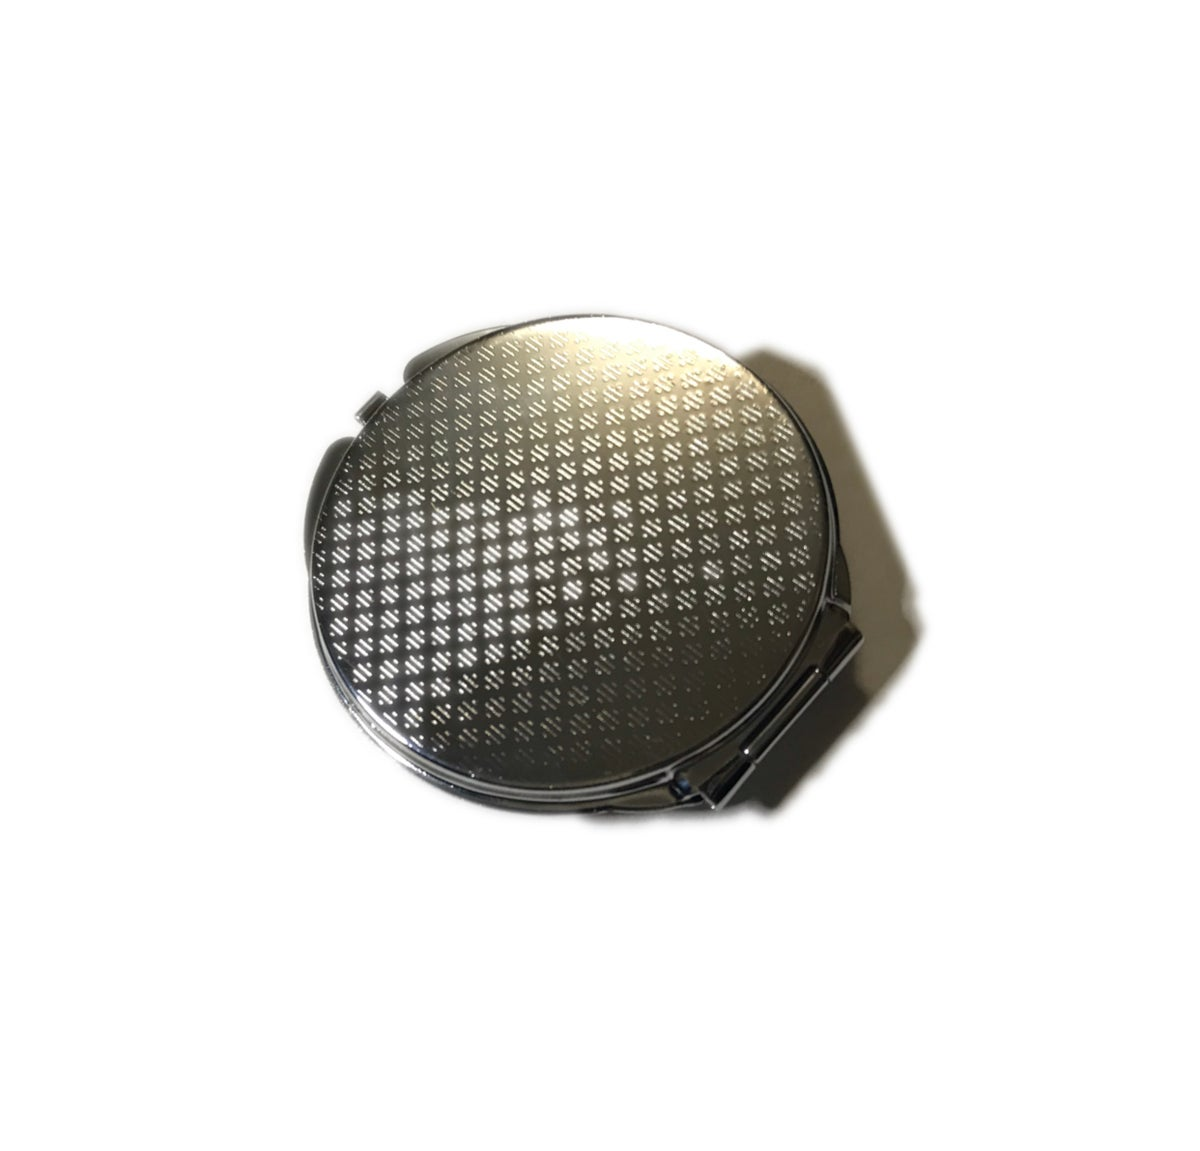 Image of Black Leather Compact Mirror